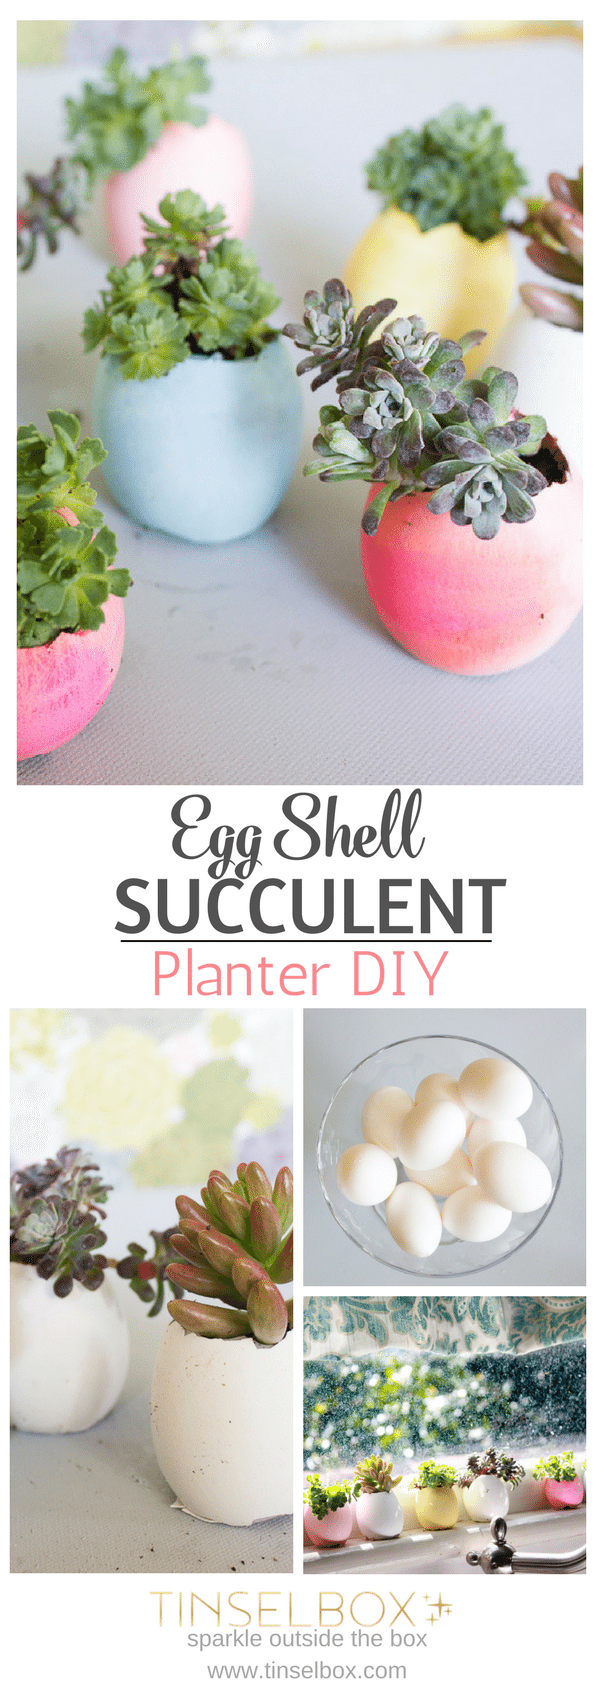 Egg Shell Succulent DIY Planter